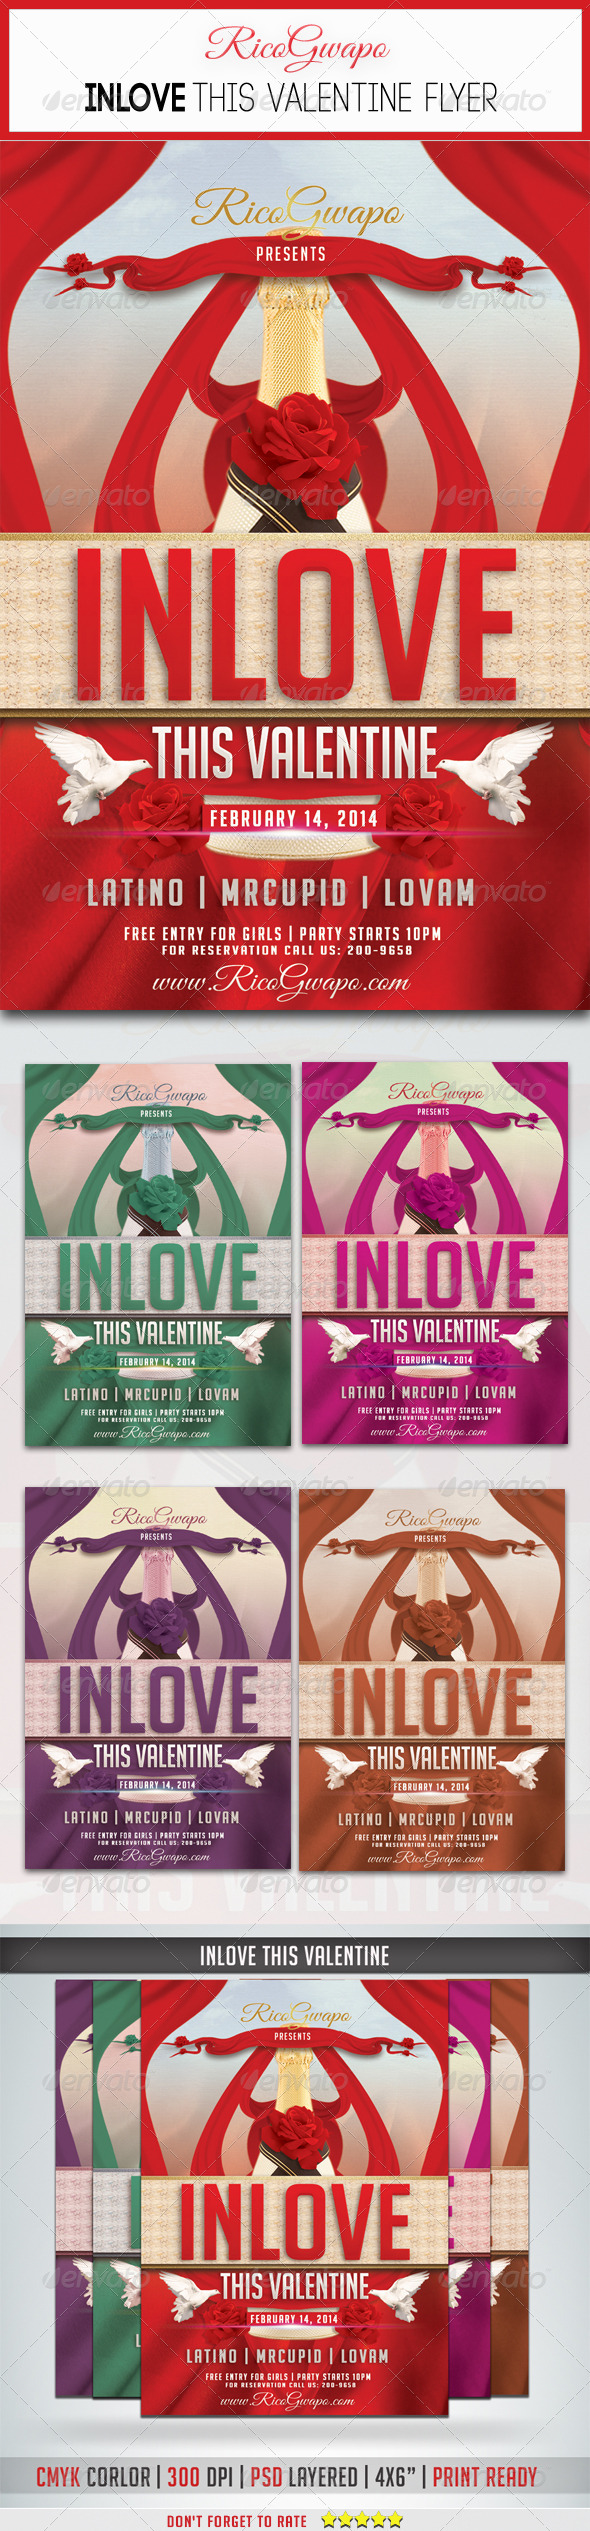 GraphicRiver Inlove This Valentine Flyer Template 6793128